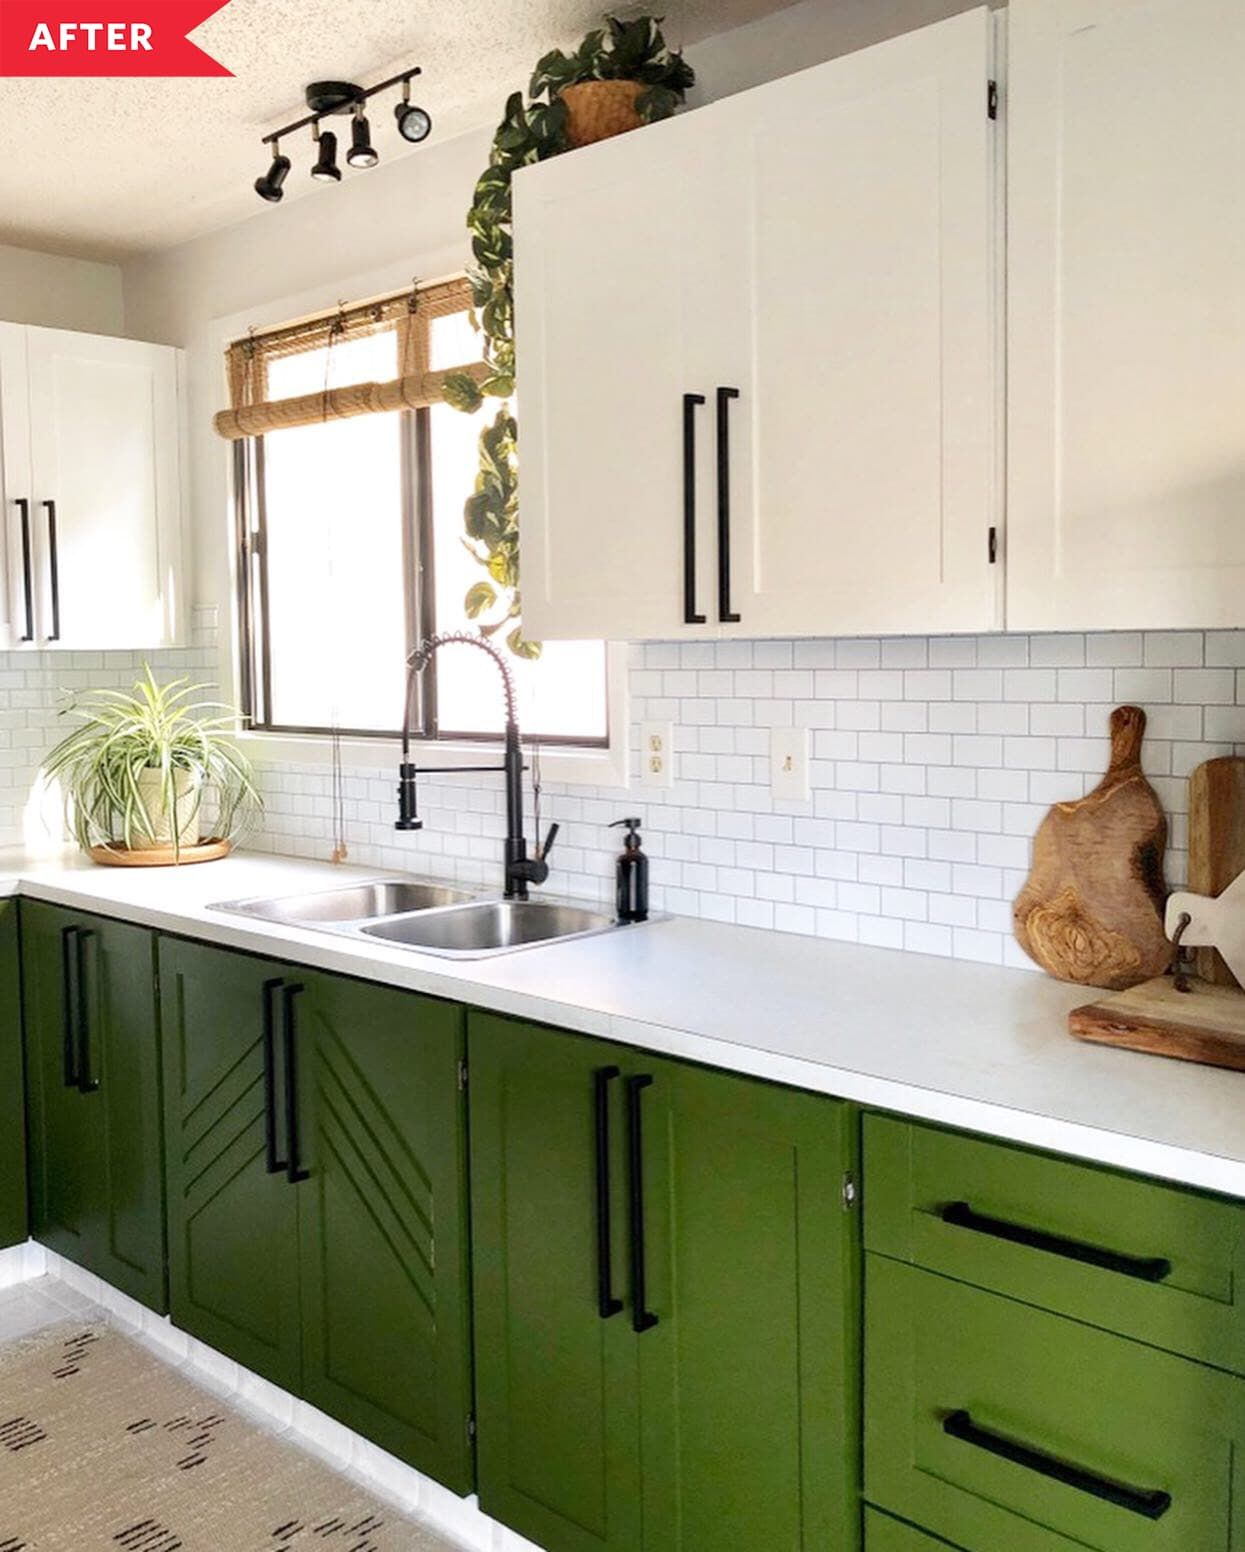 Before and After: Budget Upgrades Totally Transformed This Kitchen and Its Dark Wood Cabinets